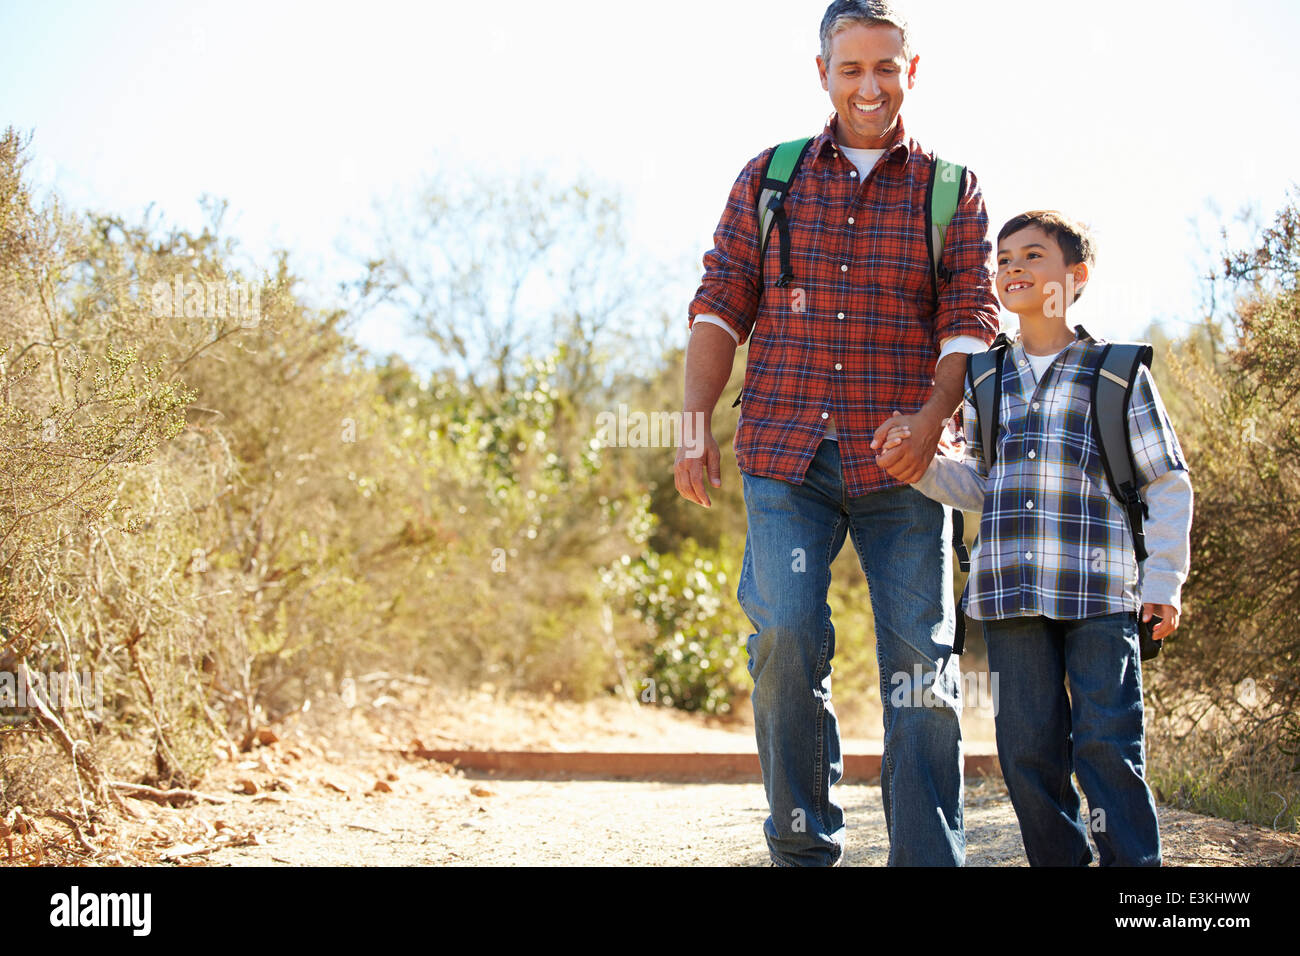 Father And Son Hiking In Countryside Wearing Backpacks - Stock Image